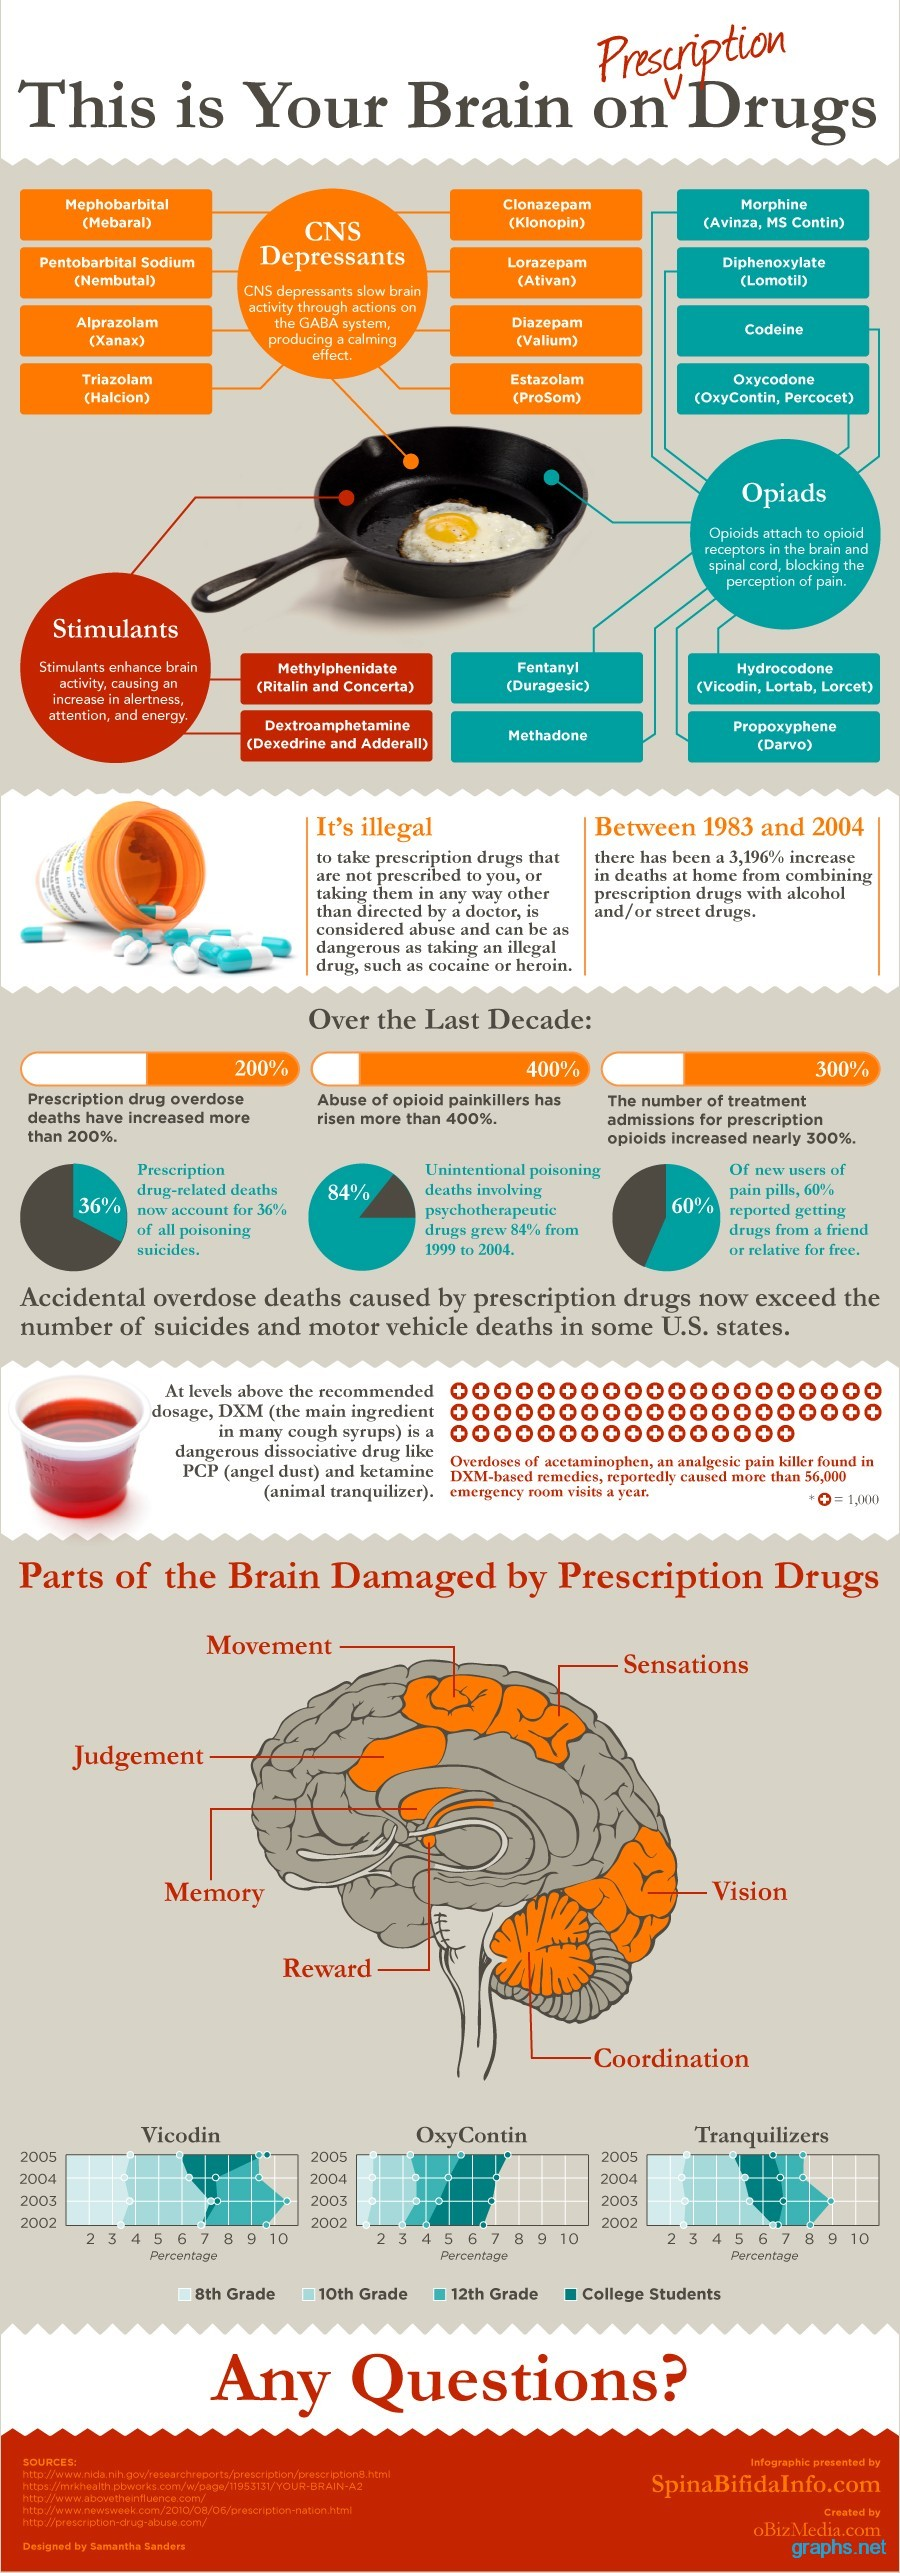 brain prescription drugs